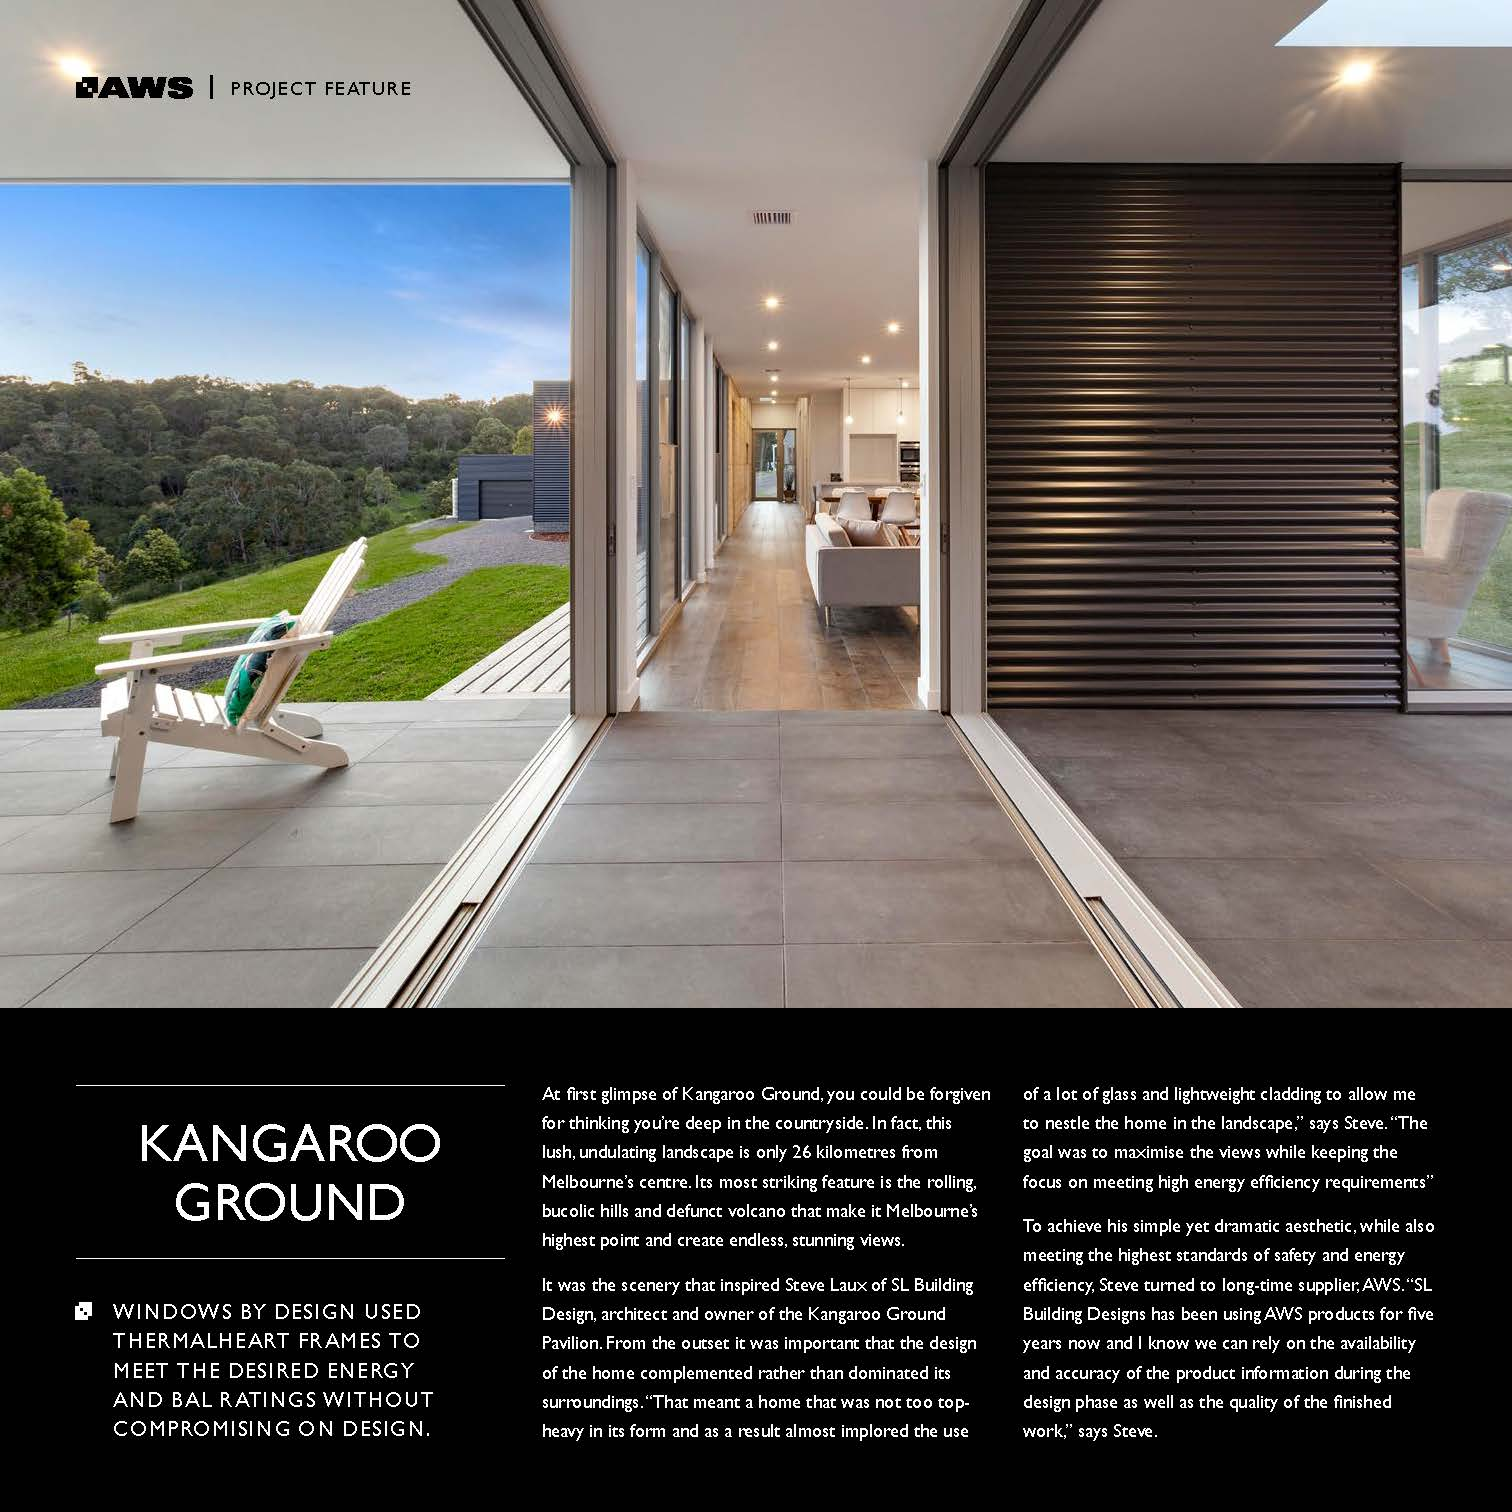 Page 1, AWS Kangaroo Ground project feature of Steve Laux Building Design